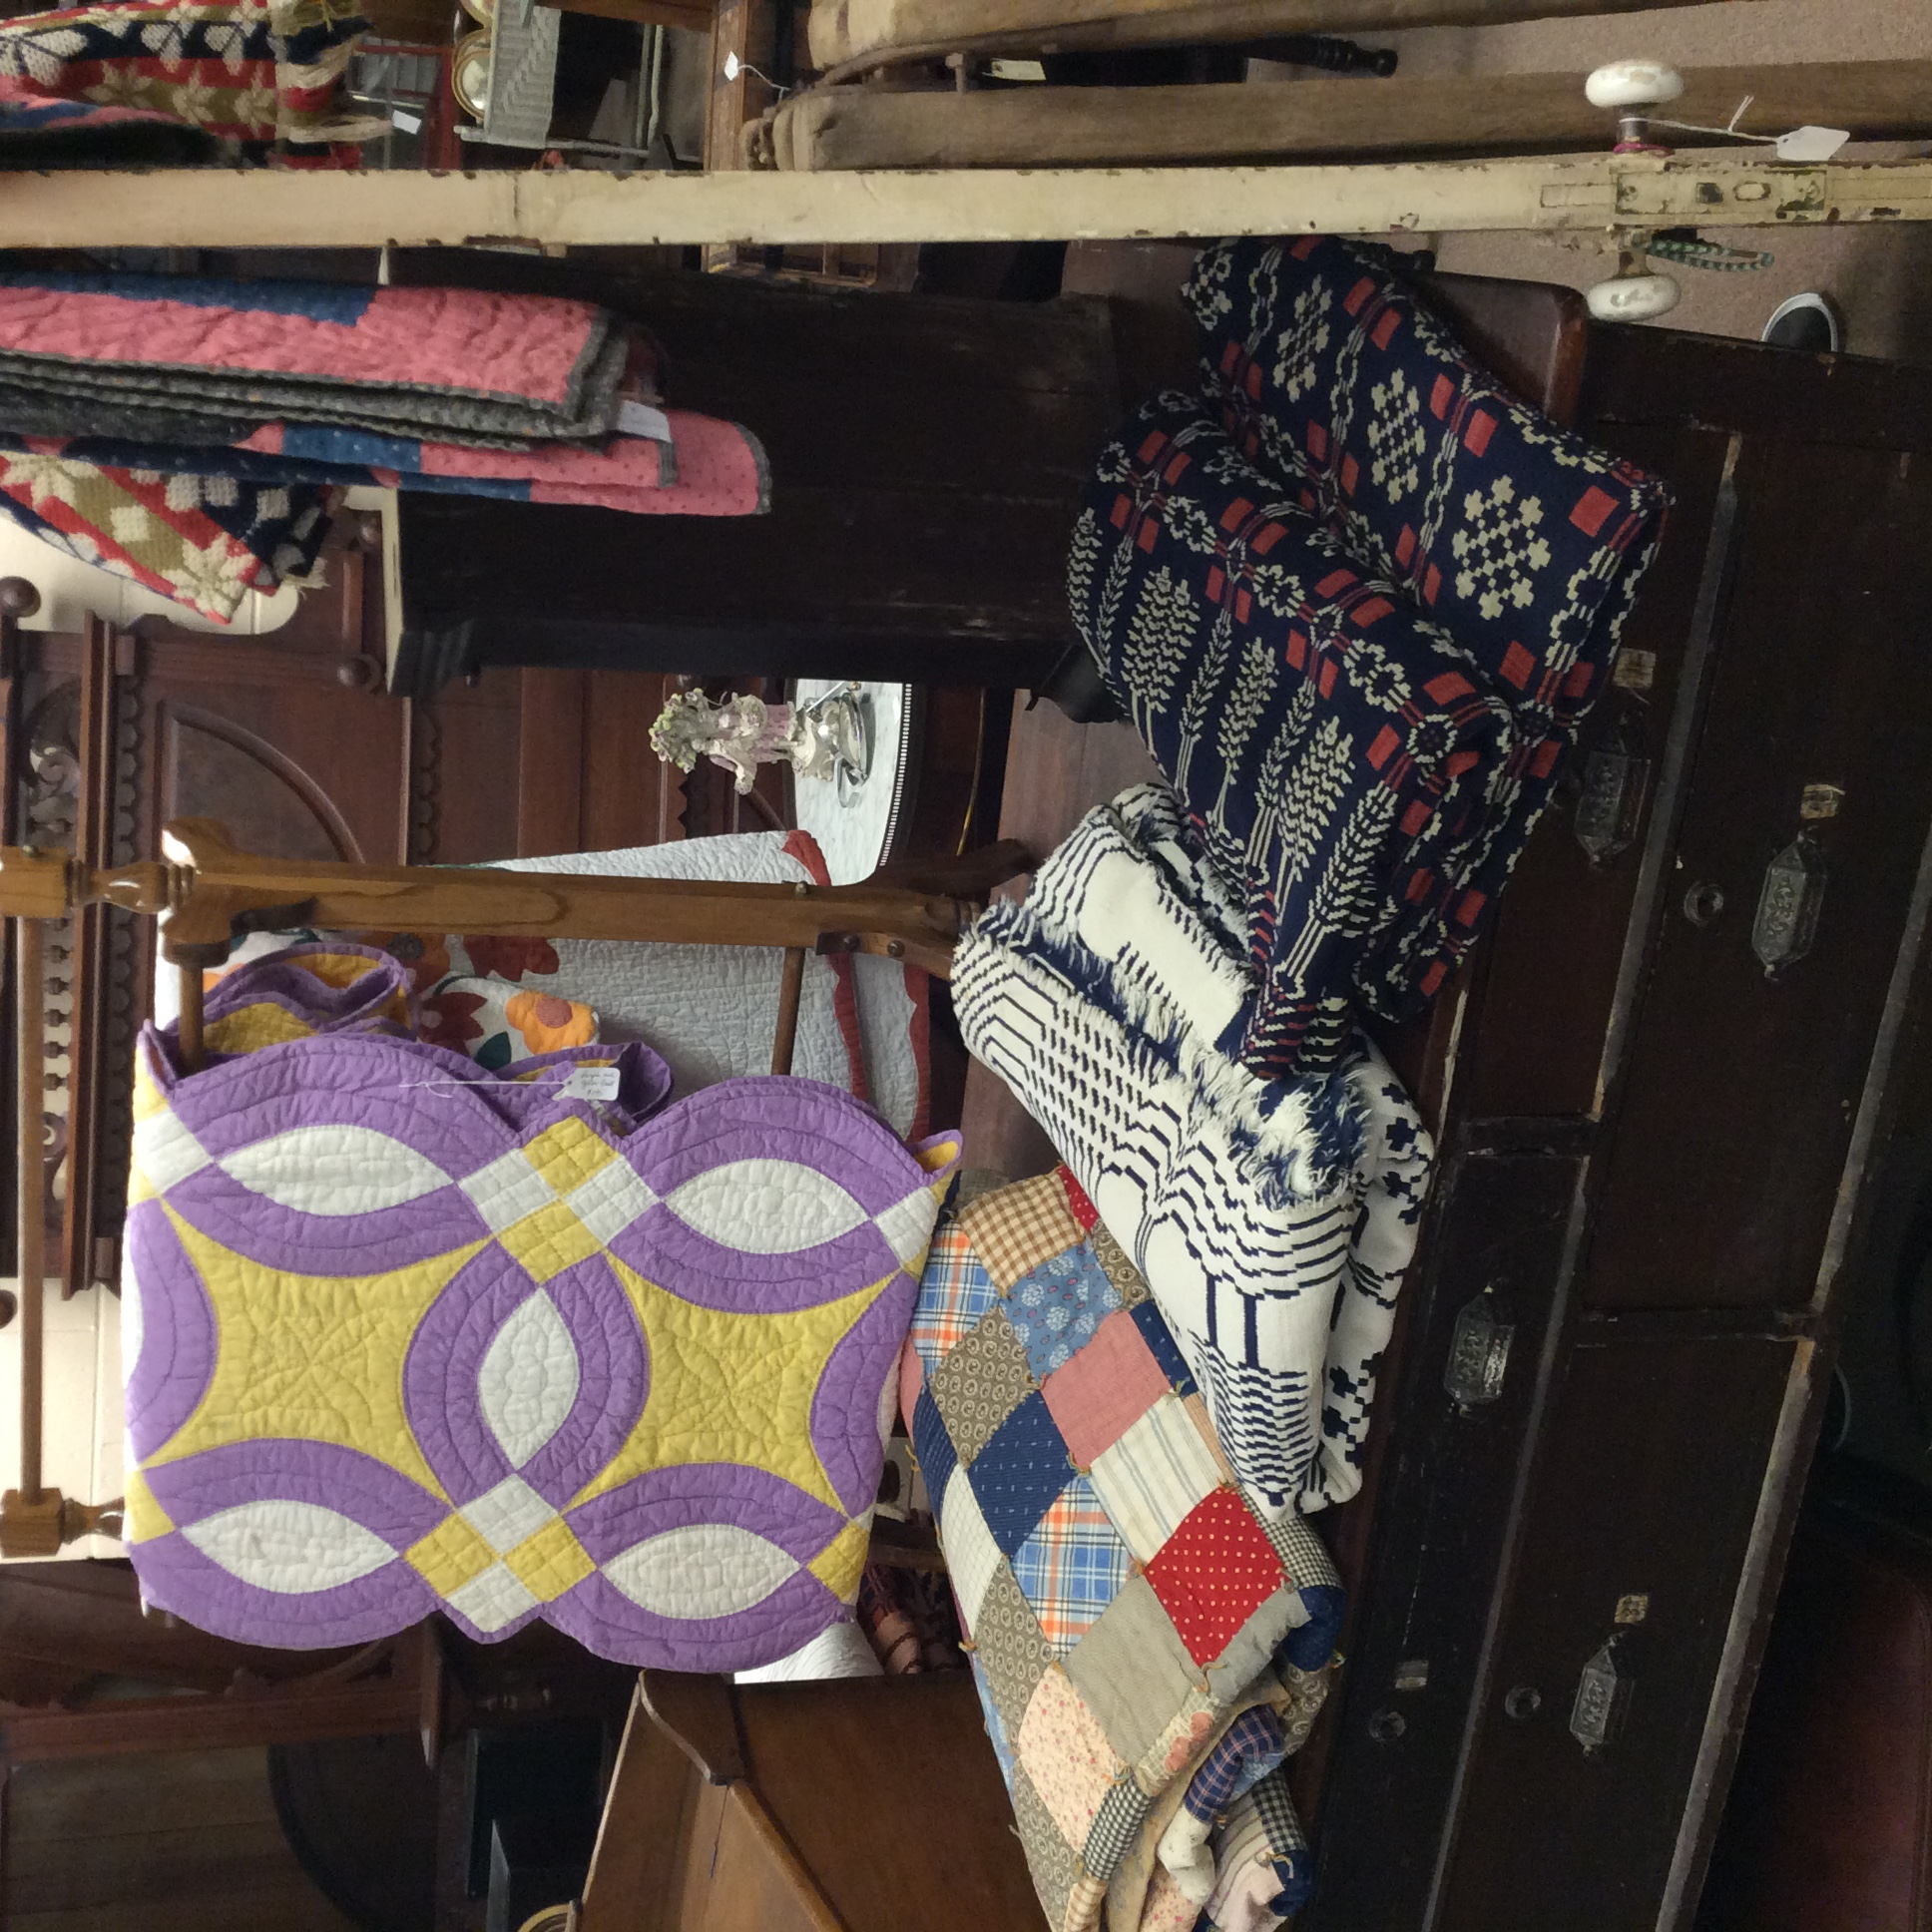 Various quilts and coverlets